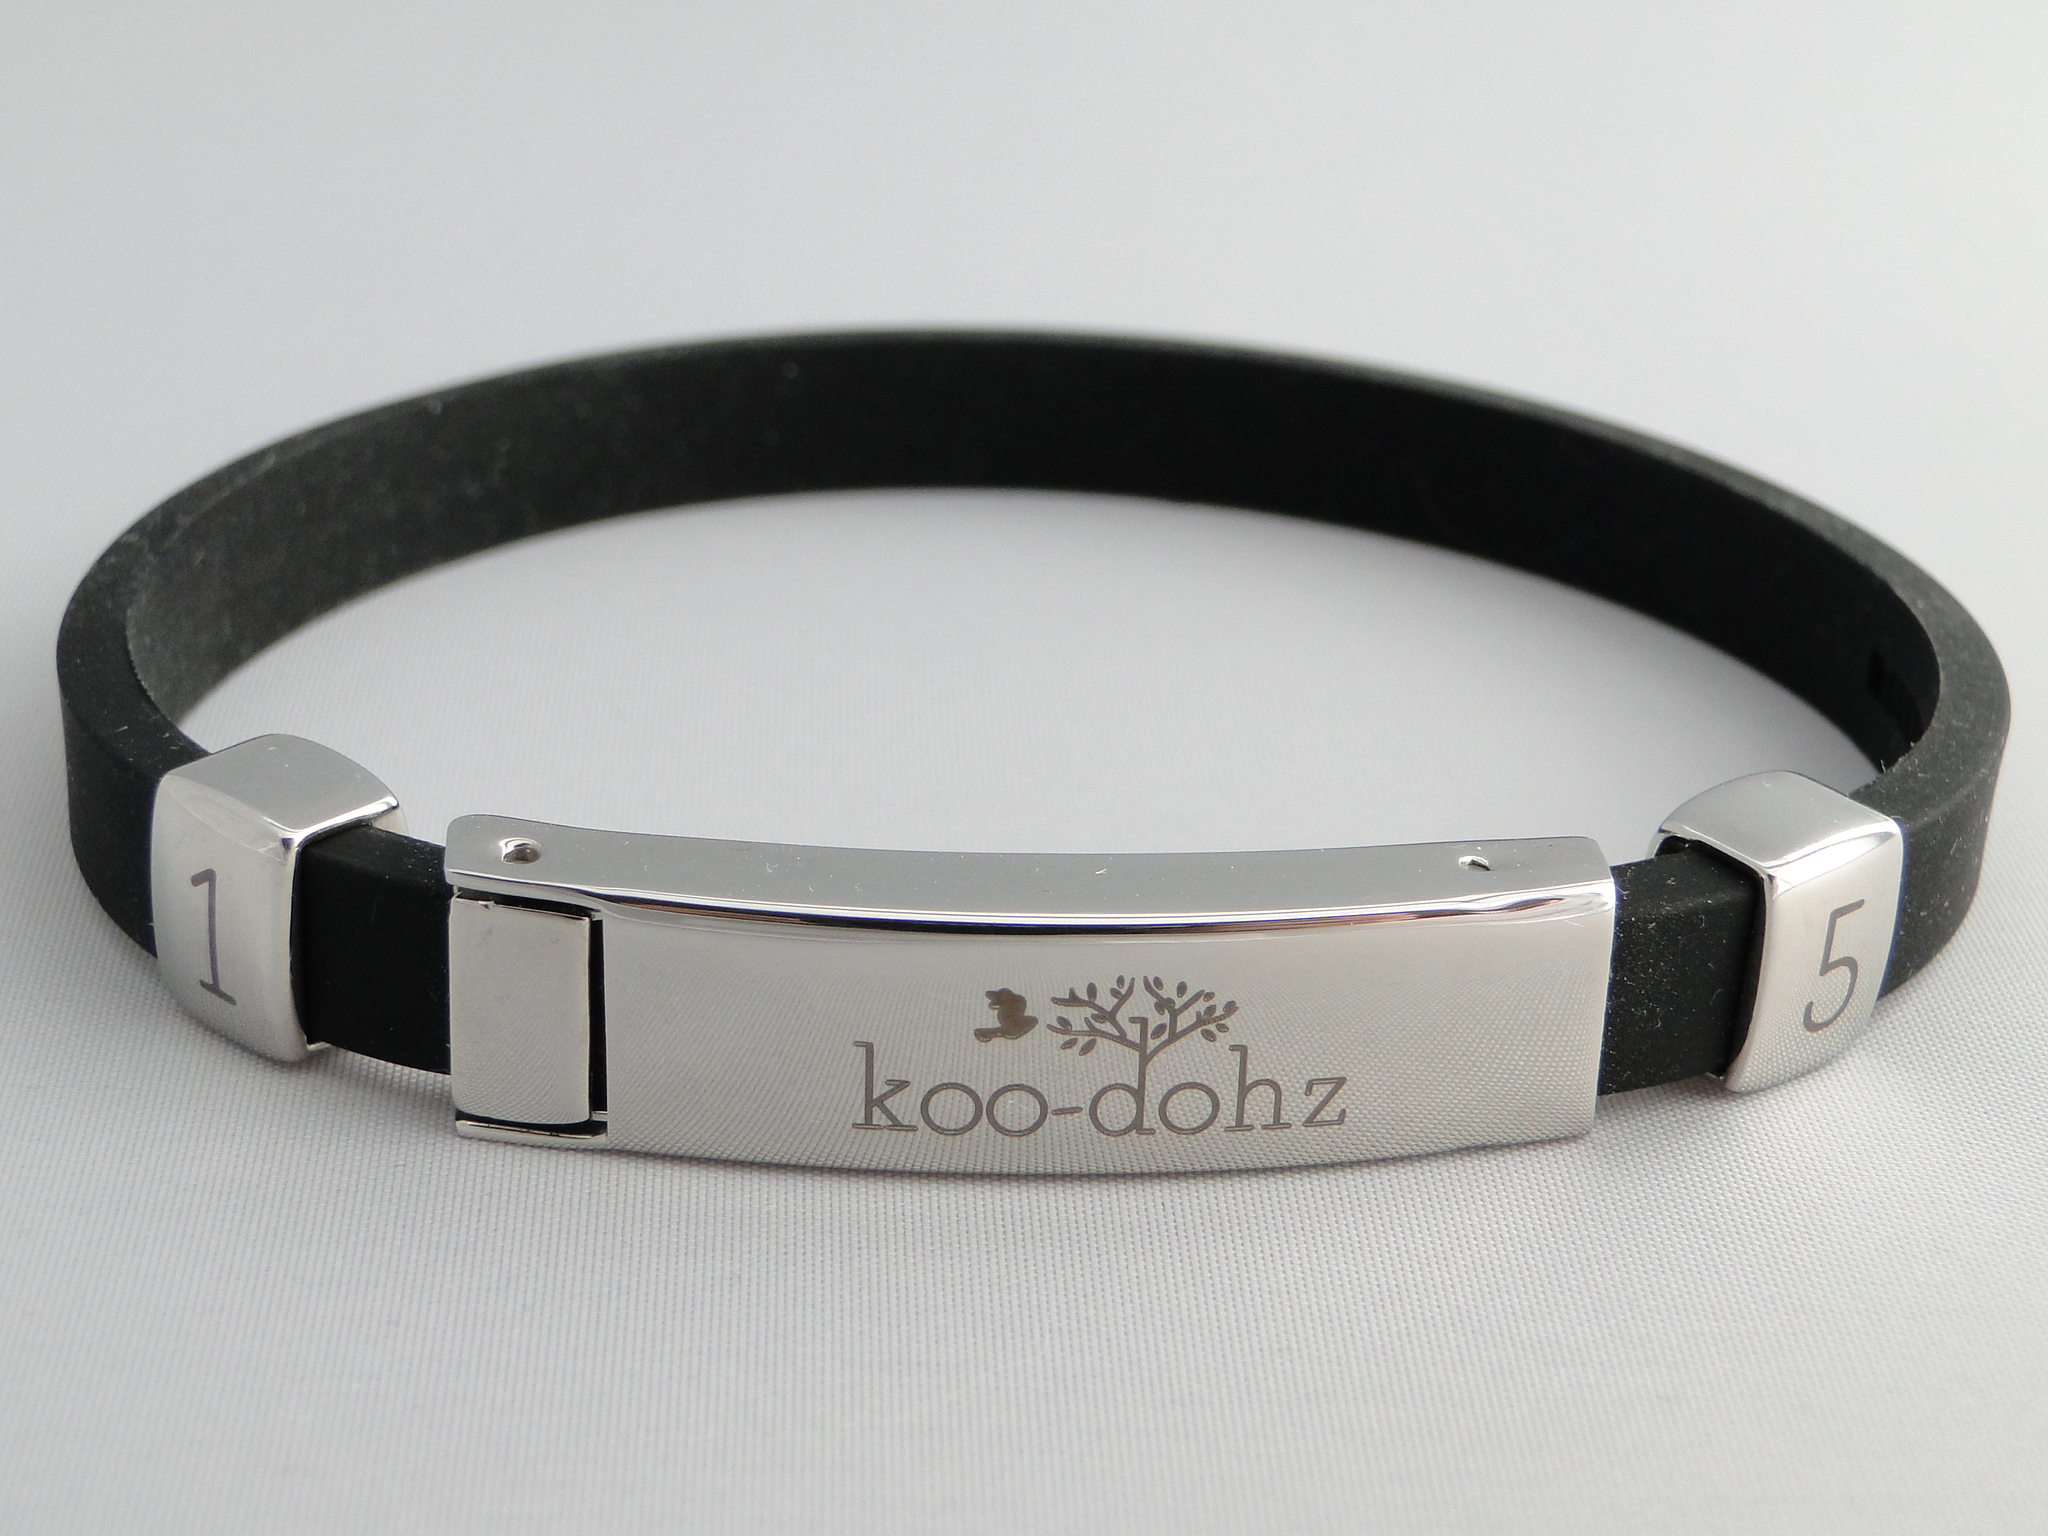 koo dohz weight loss motivator bracelet